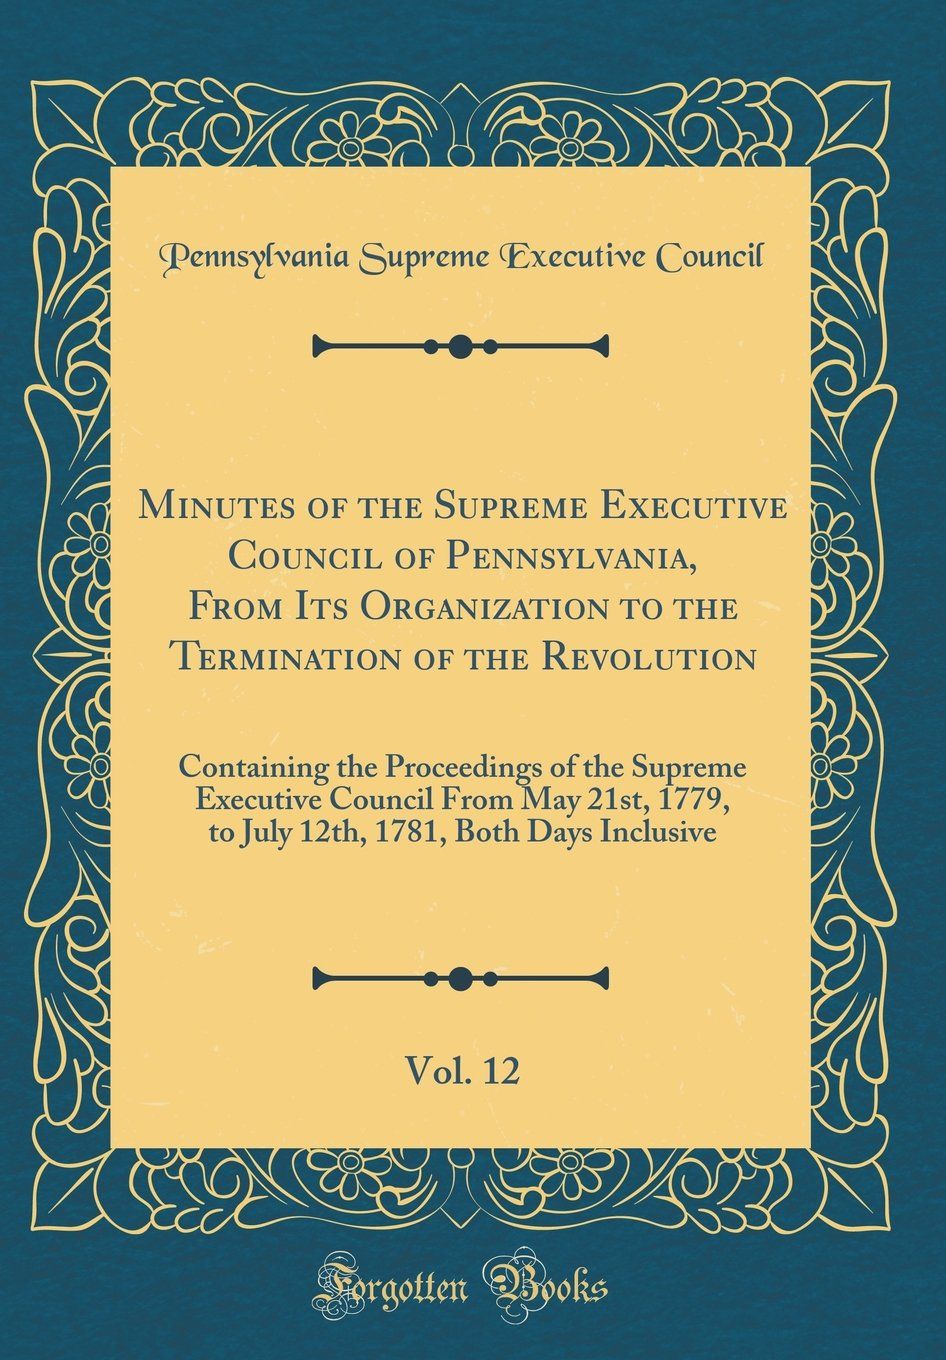 Minutes of the Supreme Executive Council of Pennsylvania, From Its Organization to the Termination of the Revolution, Vol. 12: Containing the 1779, to July 12th, 1781, Both Days Inclusive PDF ePub book